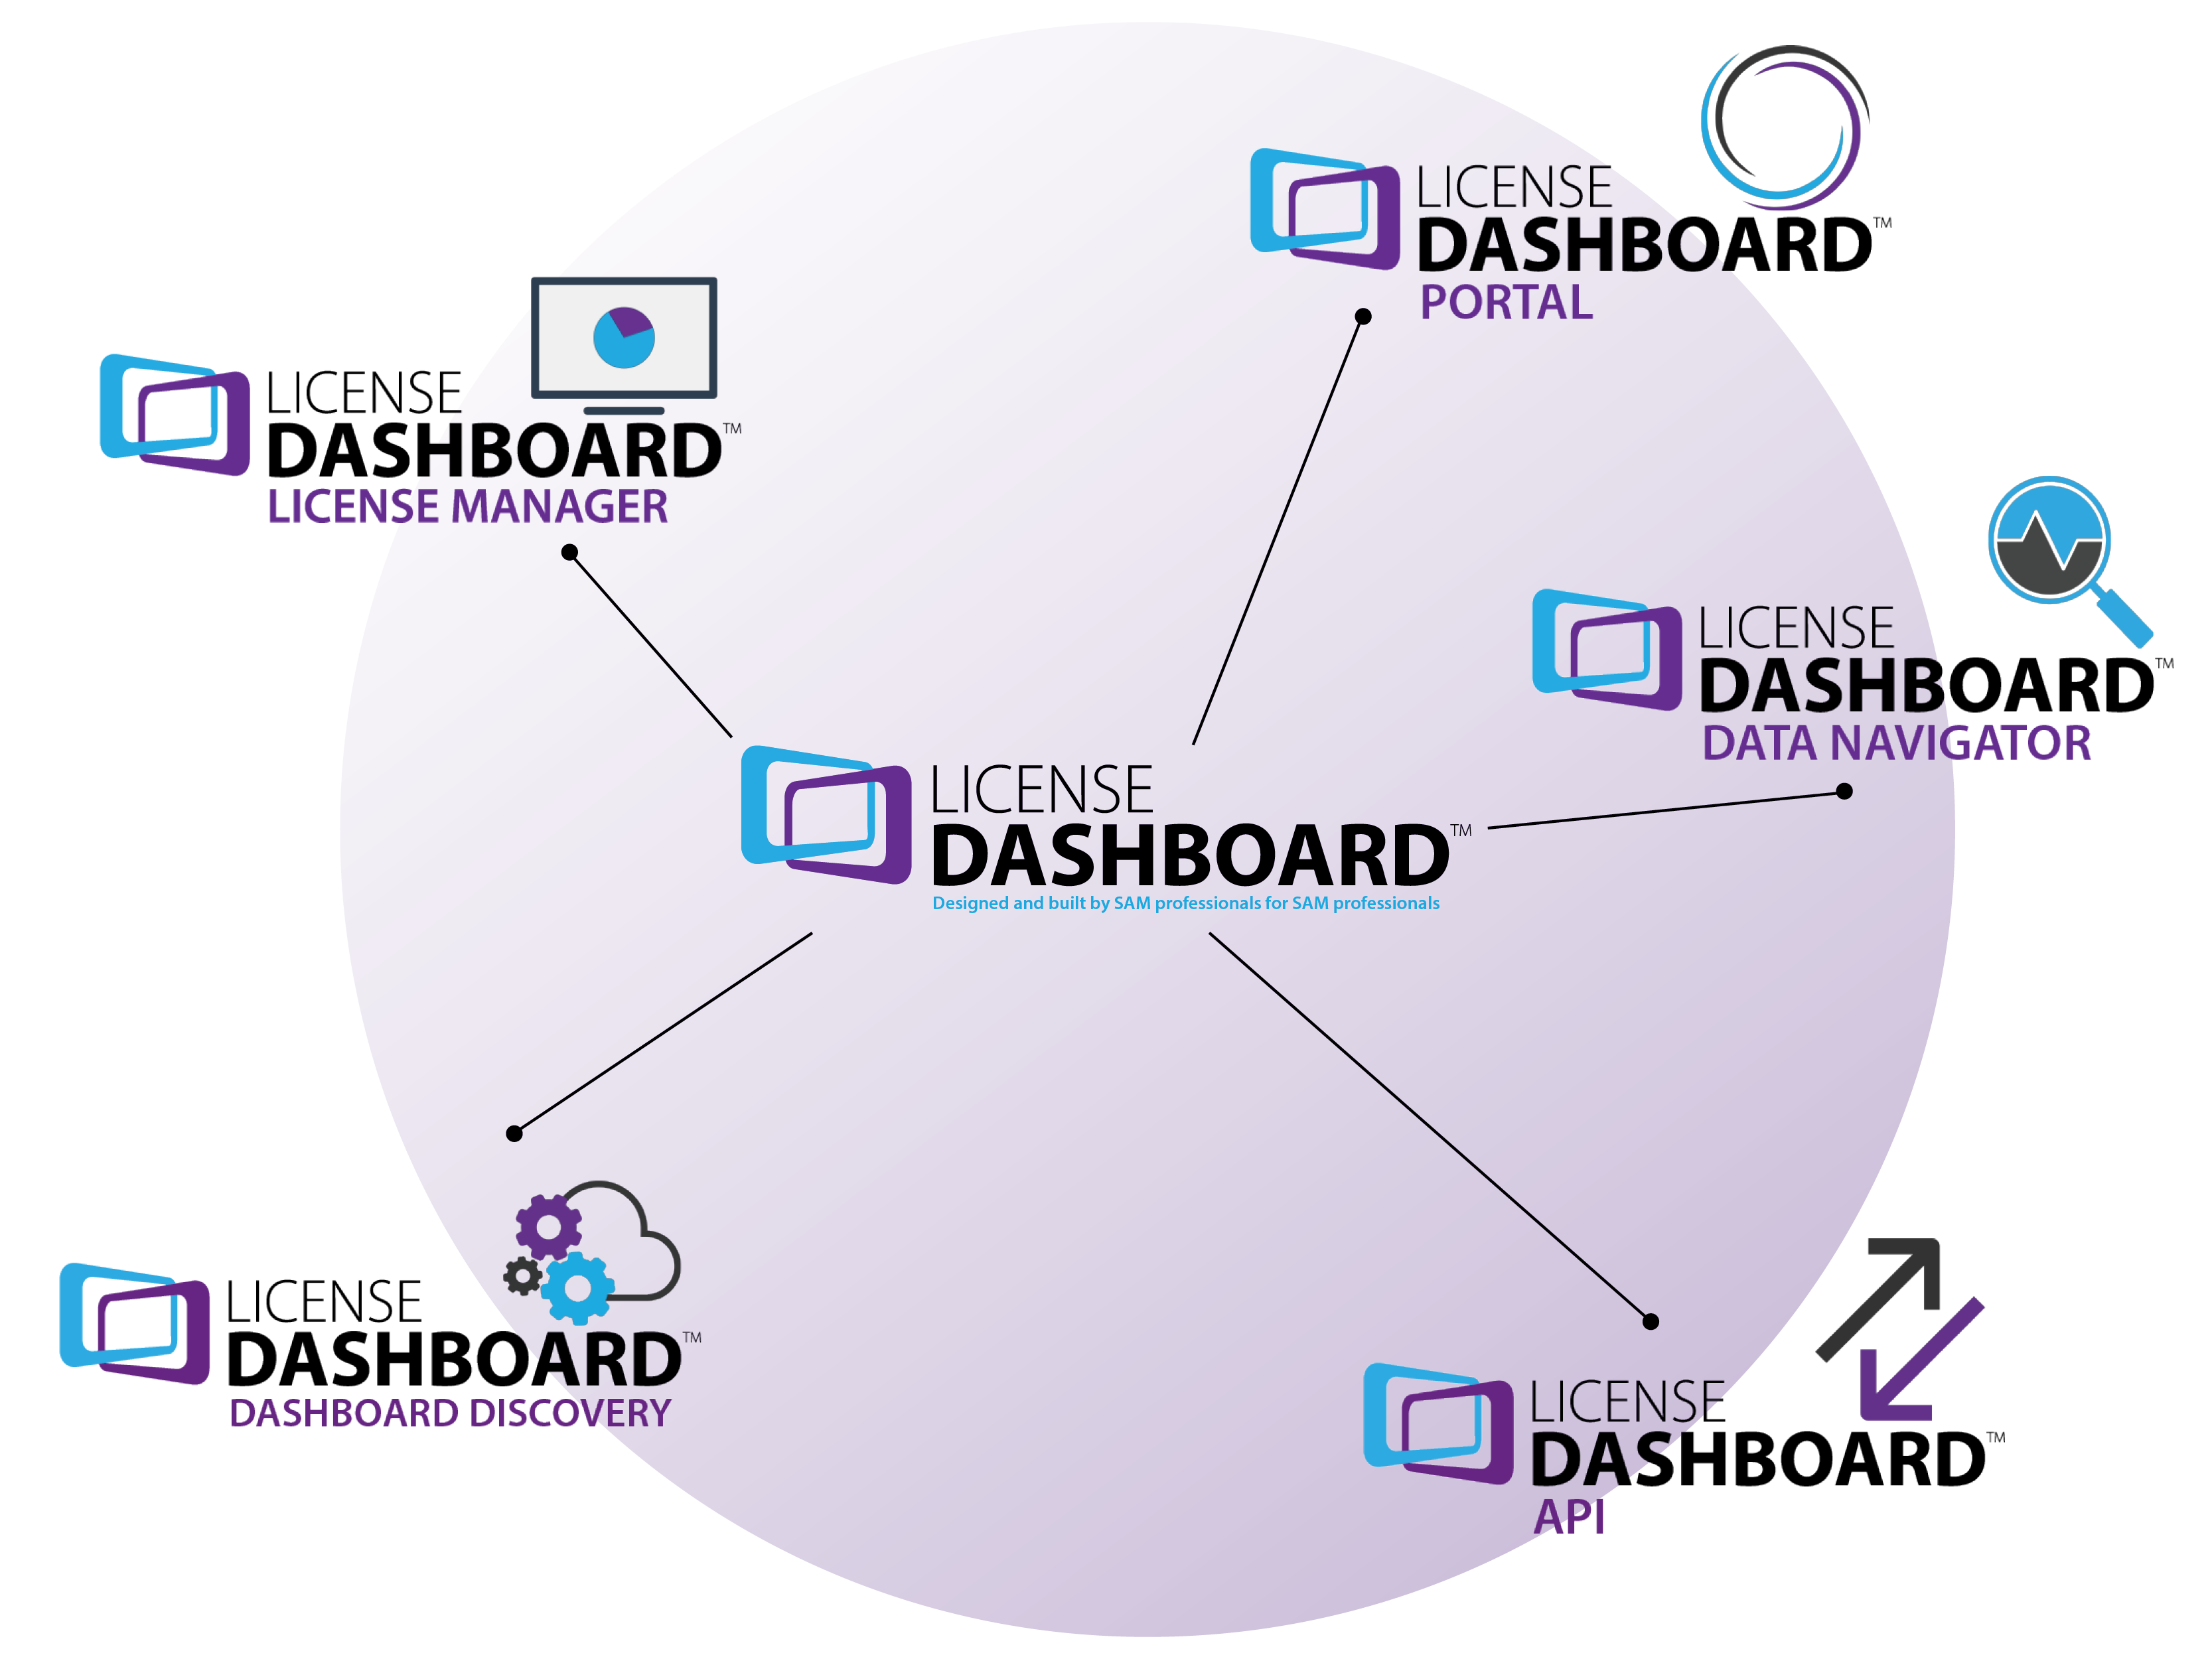 Software Asset Management Products - License Dashboard